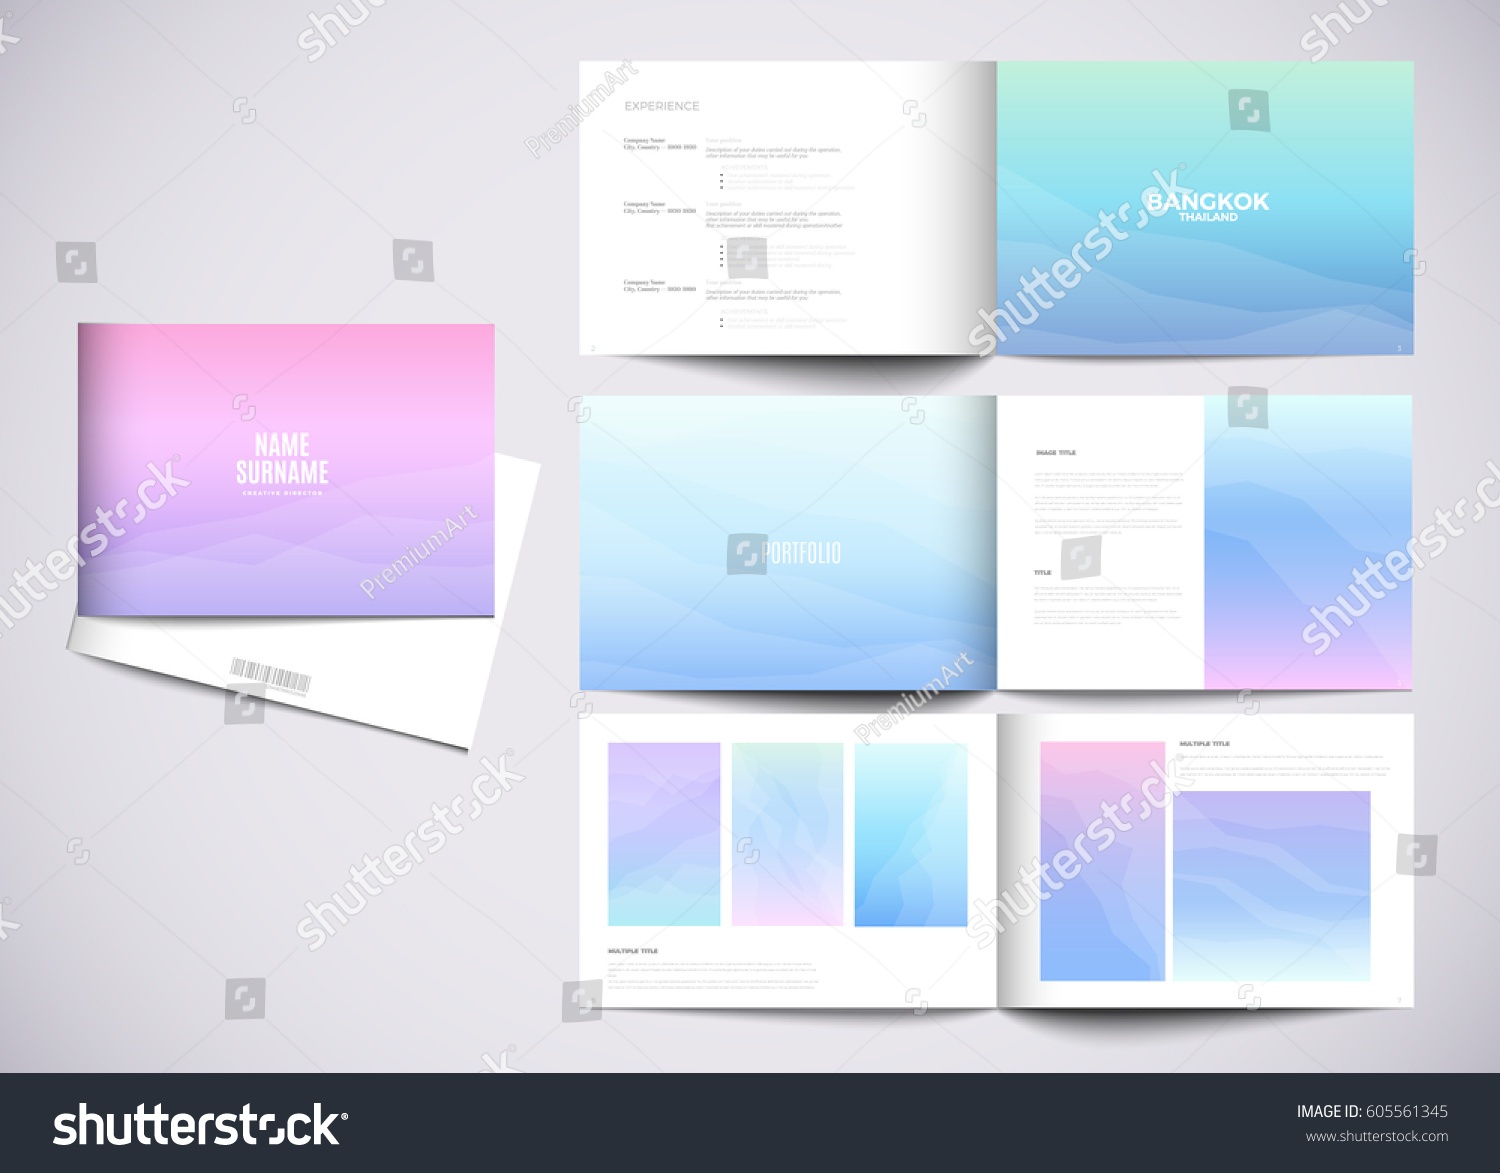 Graphic design studio portfolio template white stock vector graphic design studio portfolio template white creative pages and cover with your text photo pronofoot35fo Choice Image